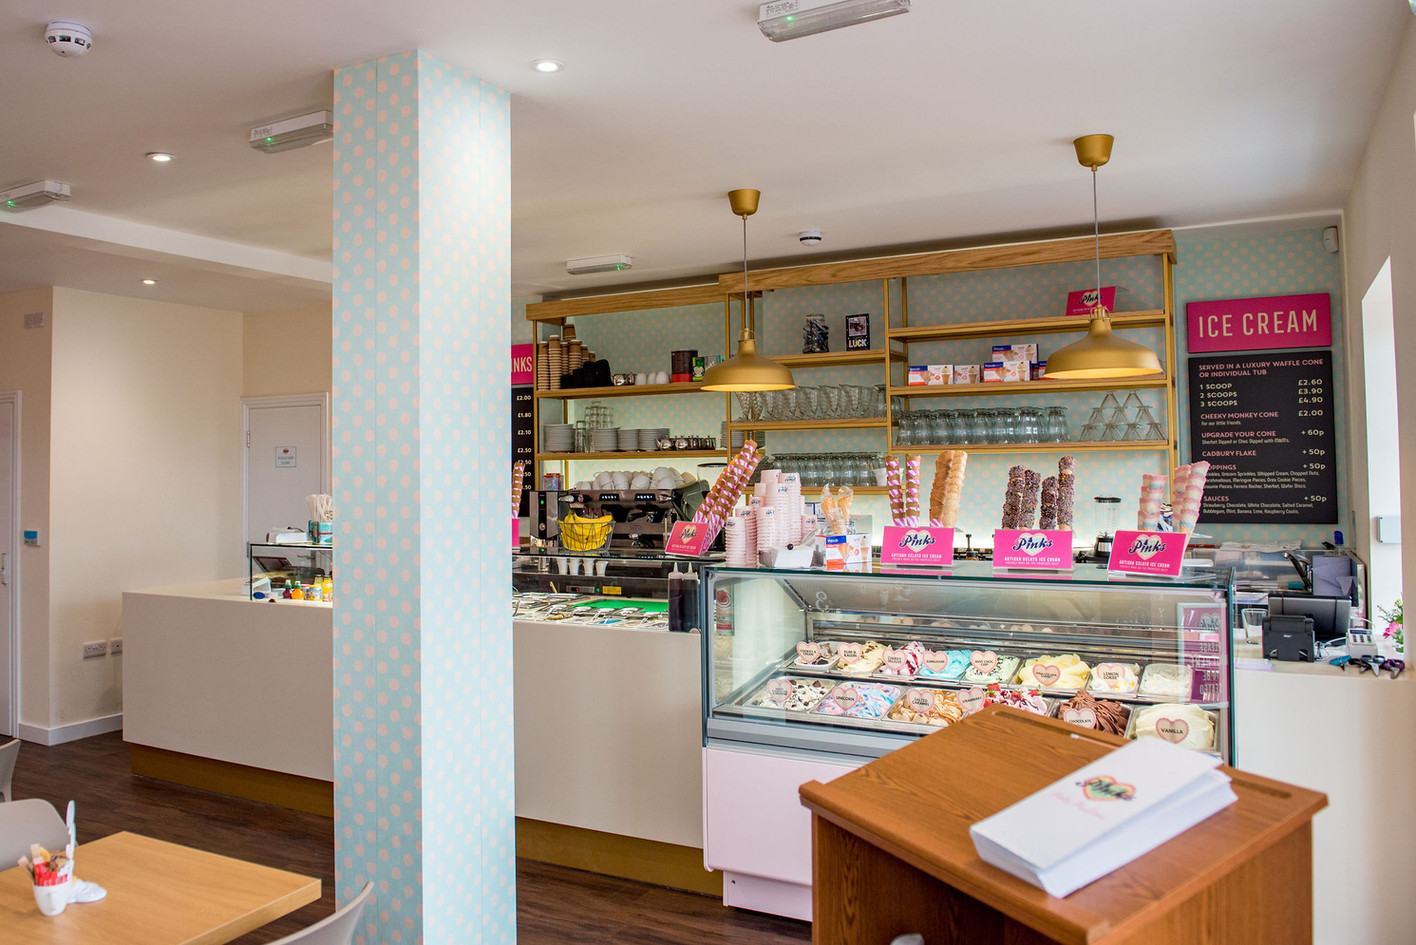 Pinks Parlour Bognor Regis Interior View